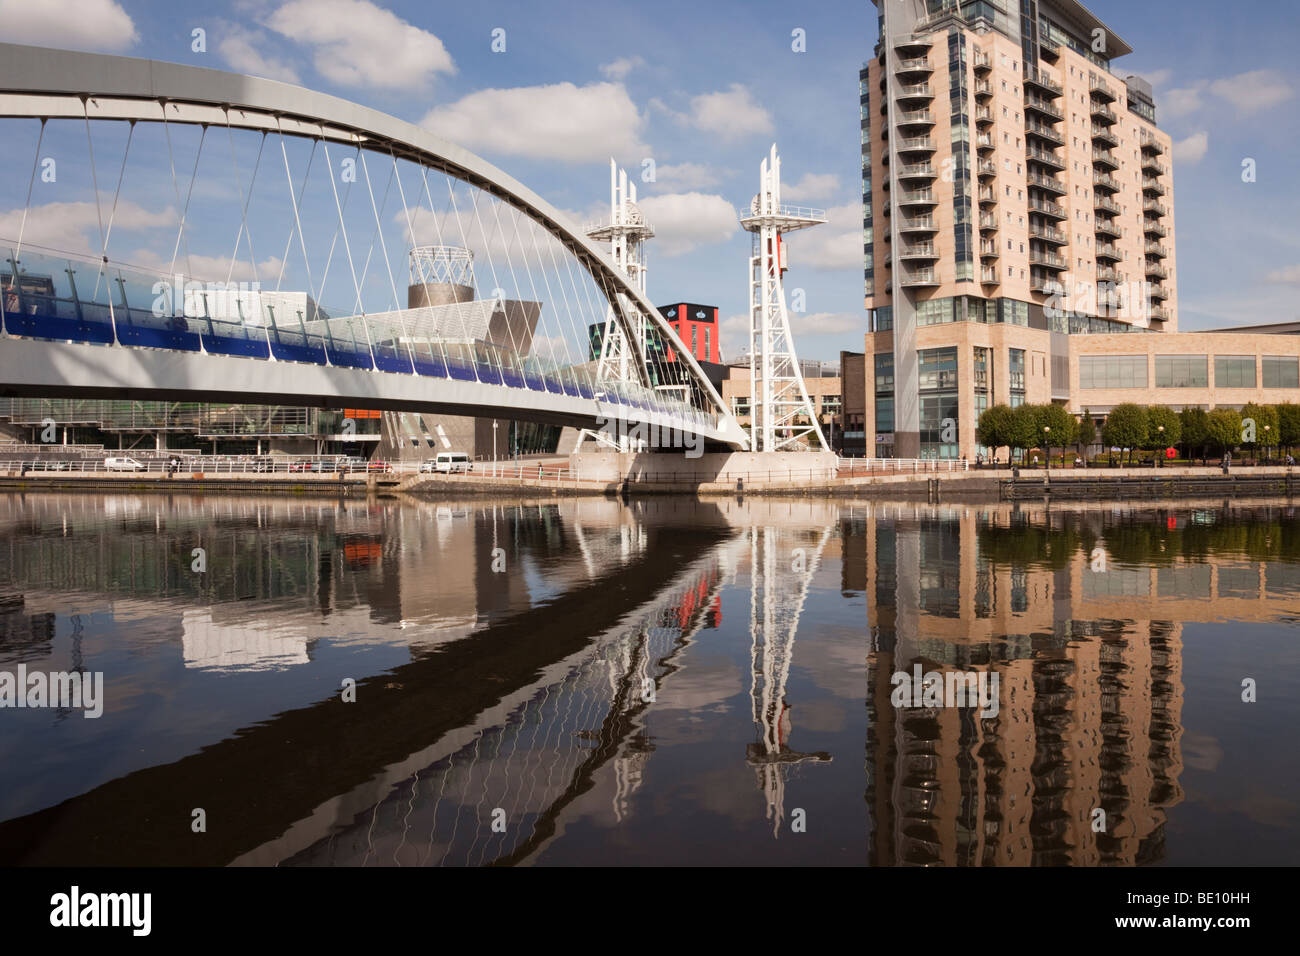 Salford Quays, Greater Manchester, England, UK. Lowry Millennium footbridge and Lowry Outlet Mall across Manchester - Stock Image